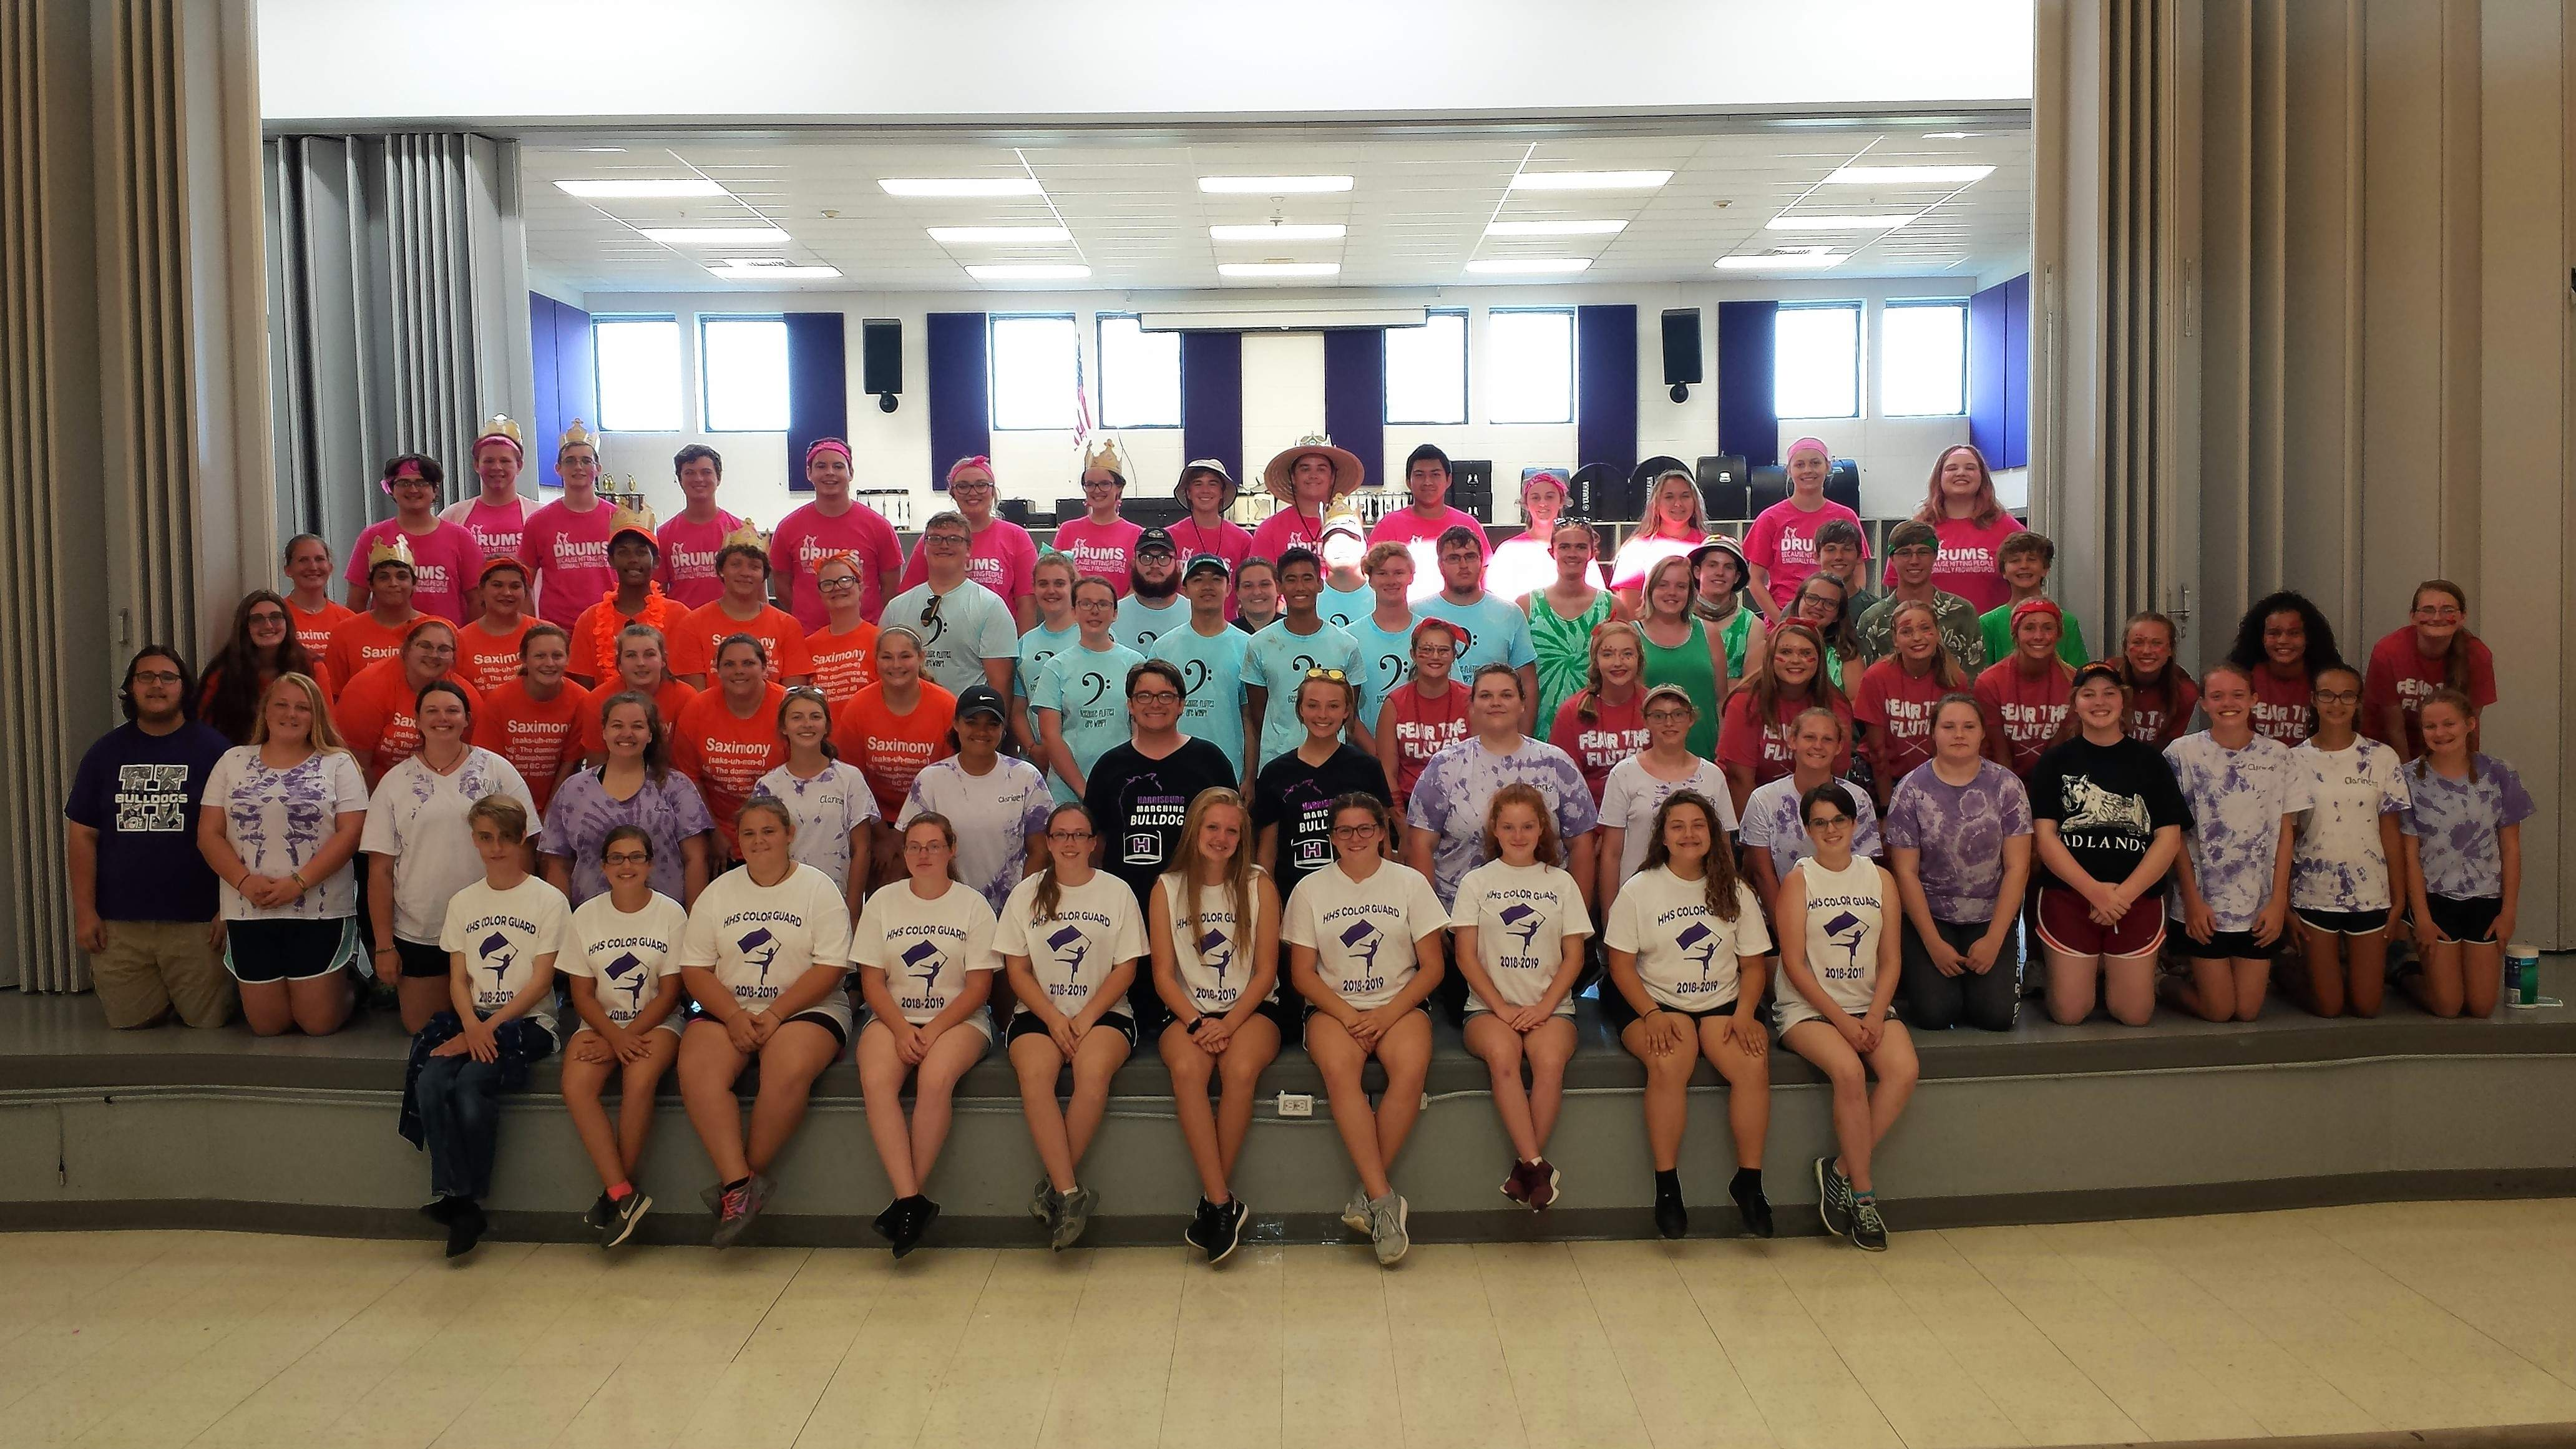 The Harrisburg High School Marching band gathers for a group photo at the end of its two-week summer band camp.